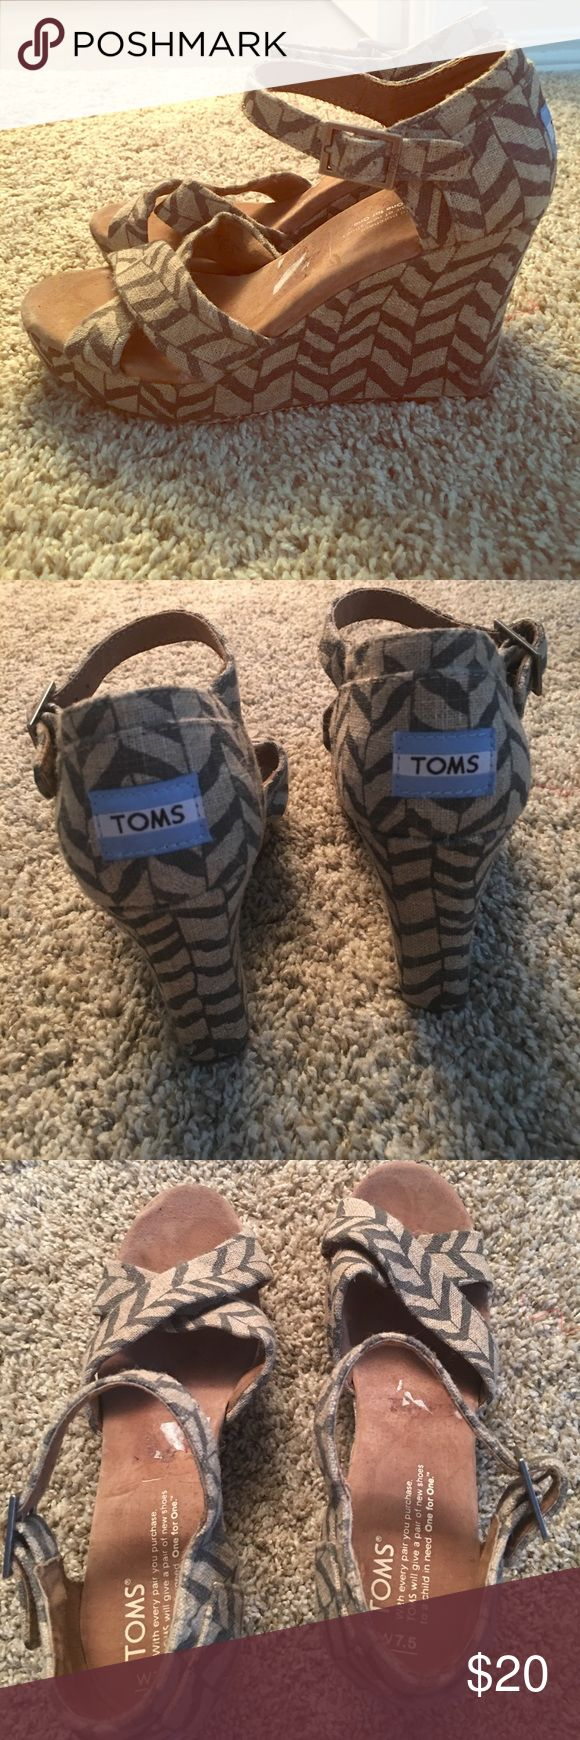 Toms chevron wedges Worn twice great shape 👍🏻 size 7.5 Toms Shoes Wedges